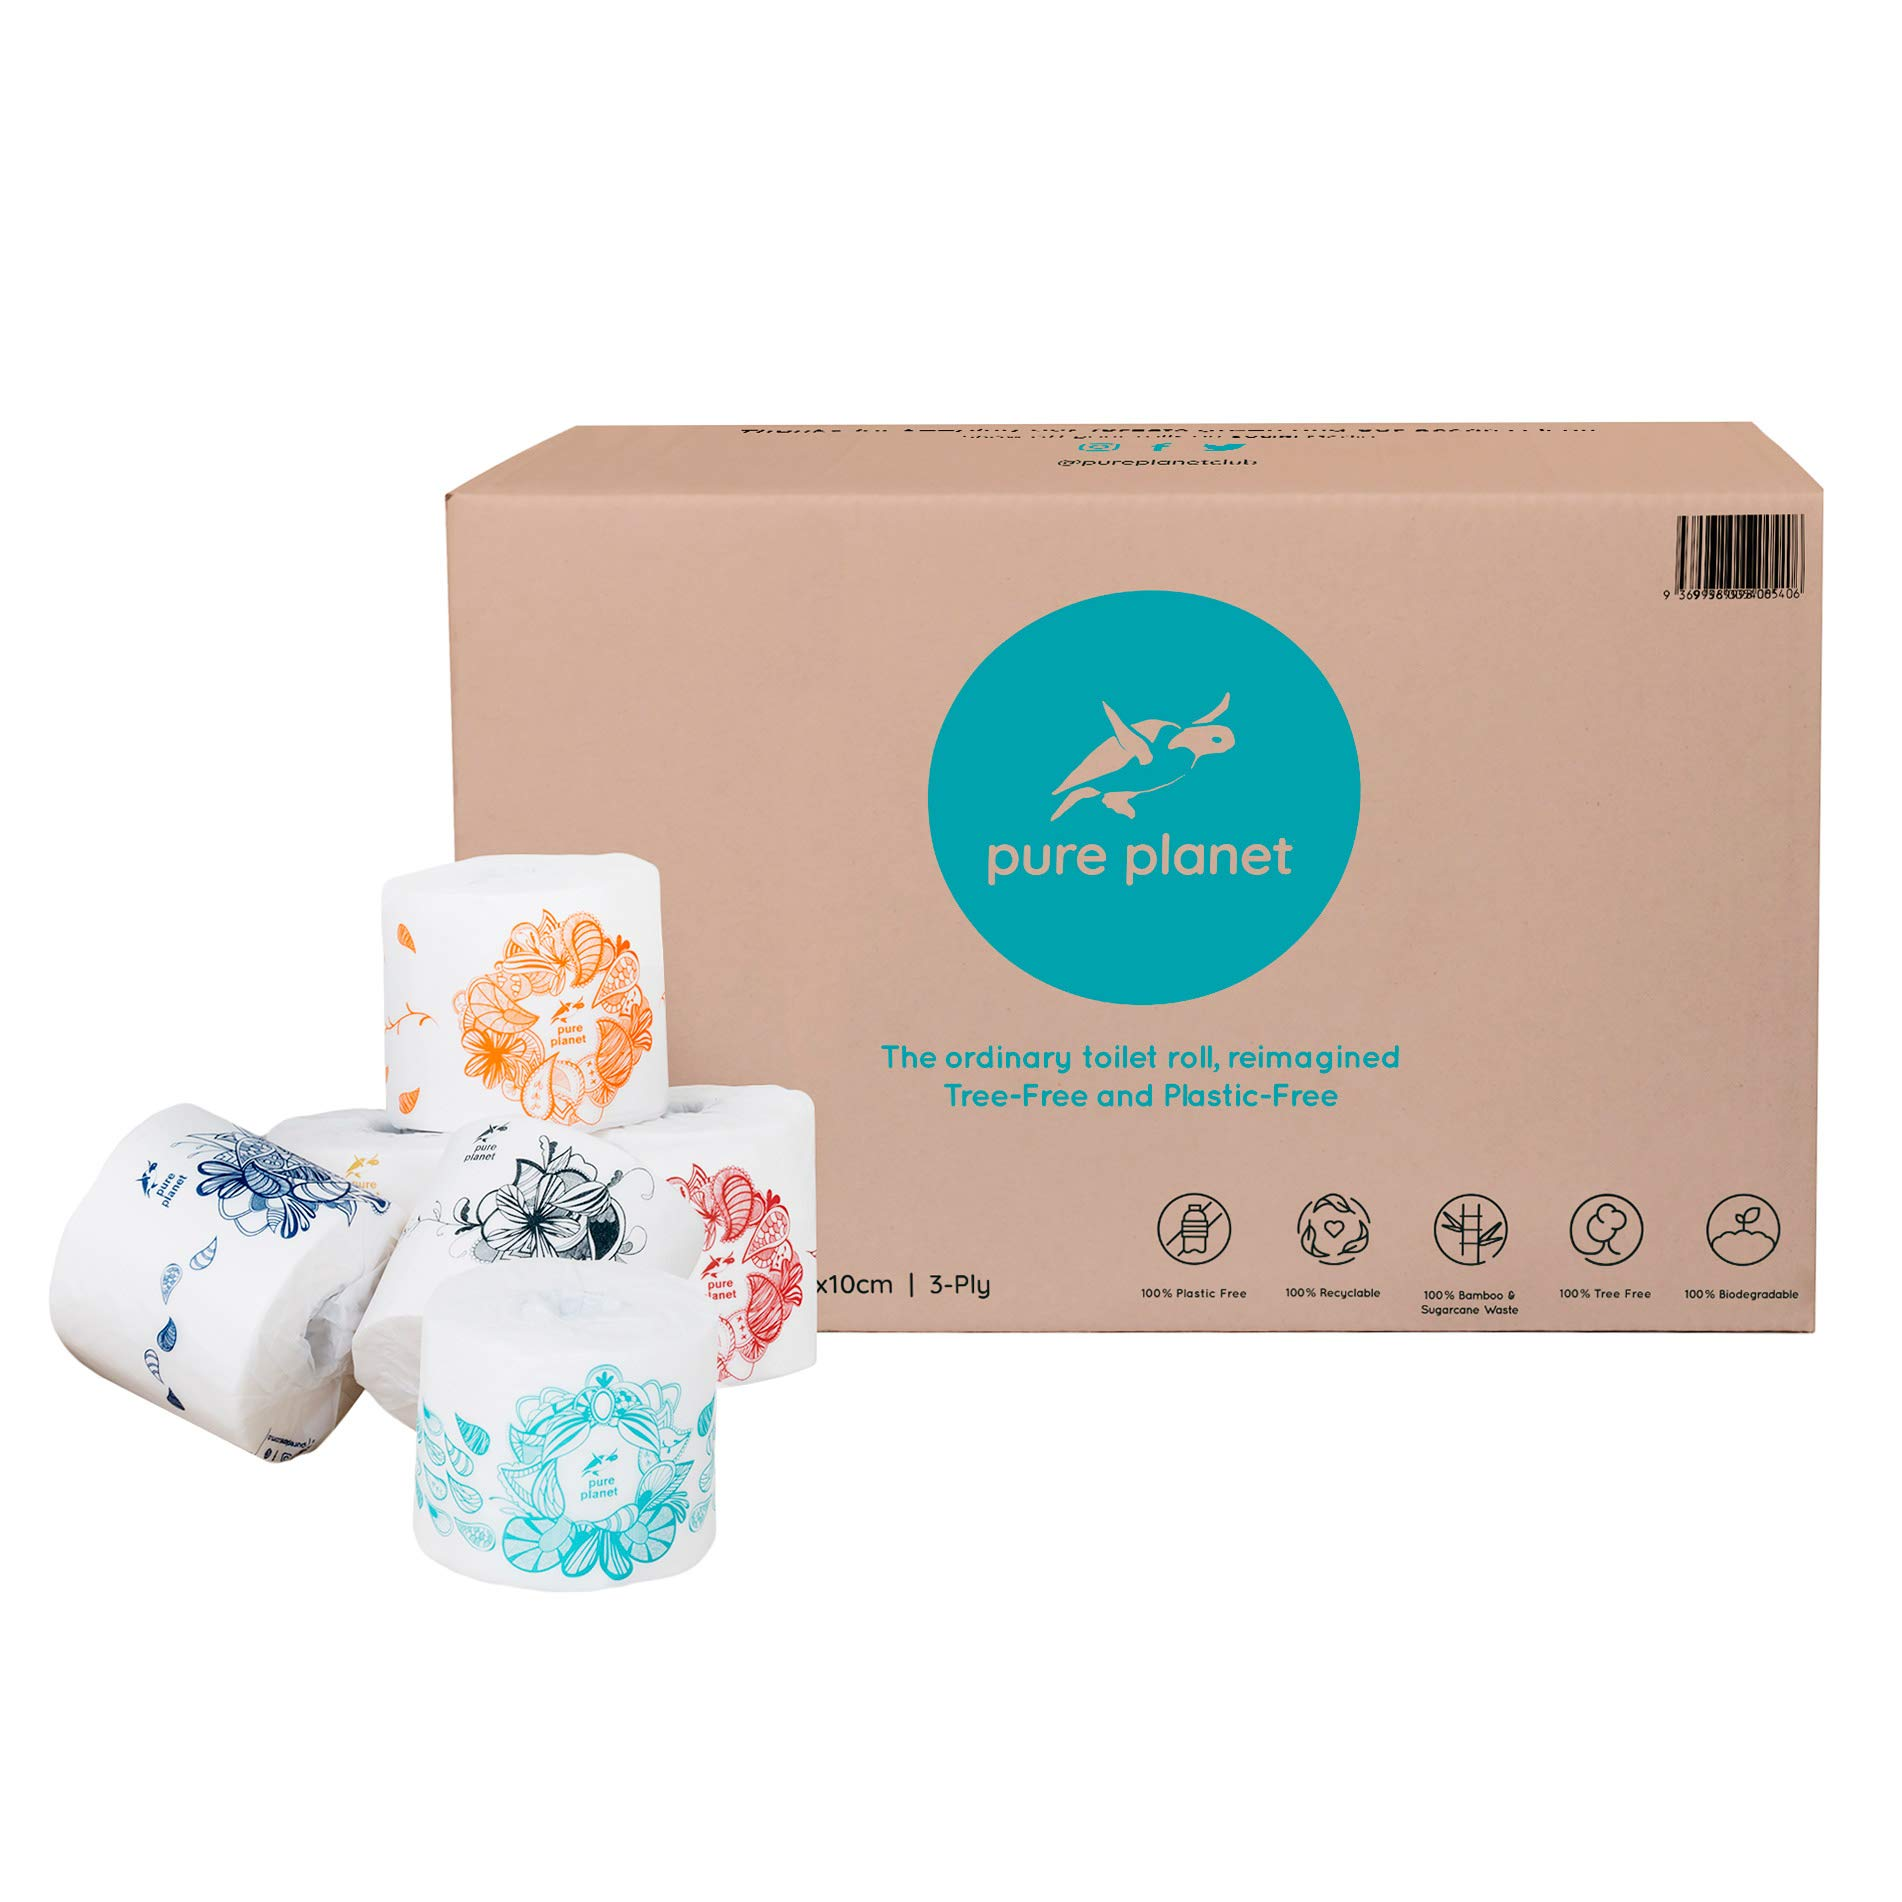 Pure Planet Club 3-Ply, Double Length, Tree-Free, Plastic-Free, Bamboo and Sugarcane Toilet Tissue, 300 Sheets Per Roll, 36 Large Rolls Per Box